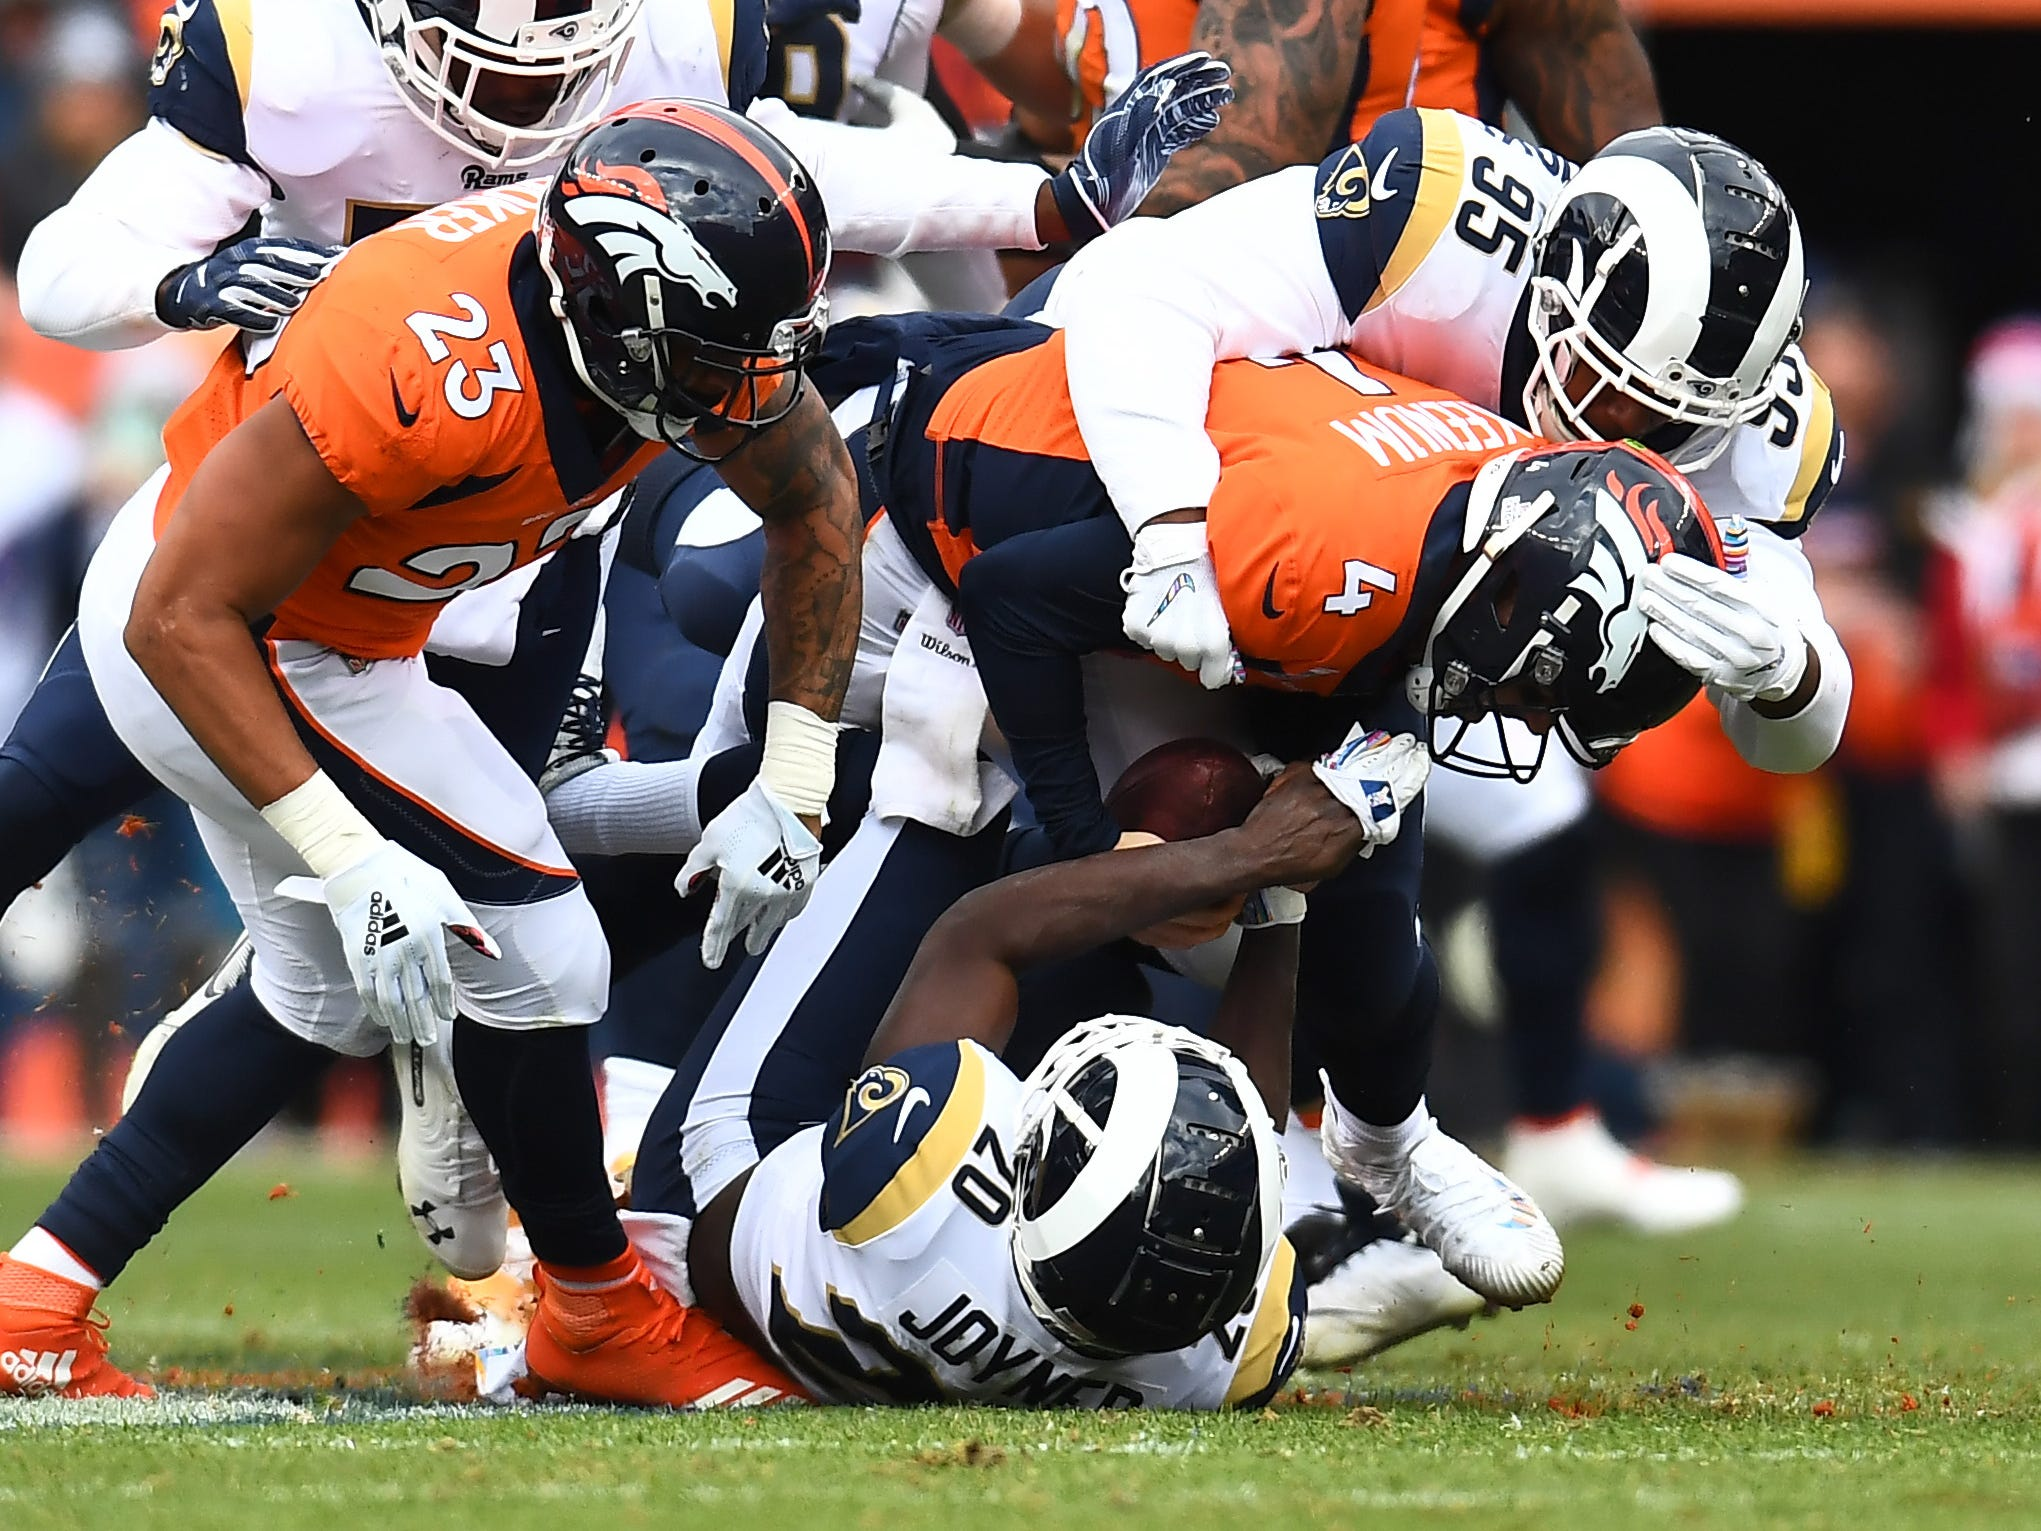 Los Angeles Rams safety Lamarcus Joyner (20) and defensive lineman Ethan Westbrooks (95) combine to sack Denver Broncos quarterback Case Keenum in the second quarter at Broncos Stadium at Mile High.